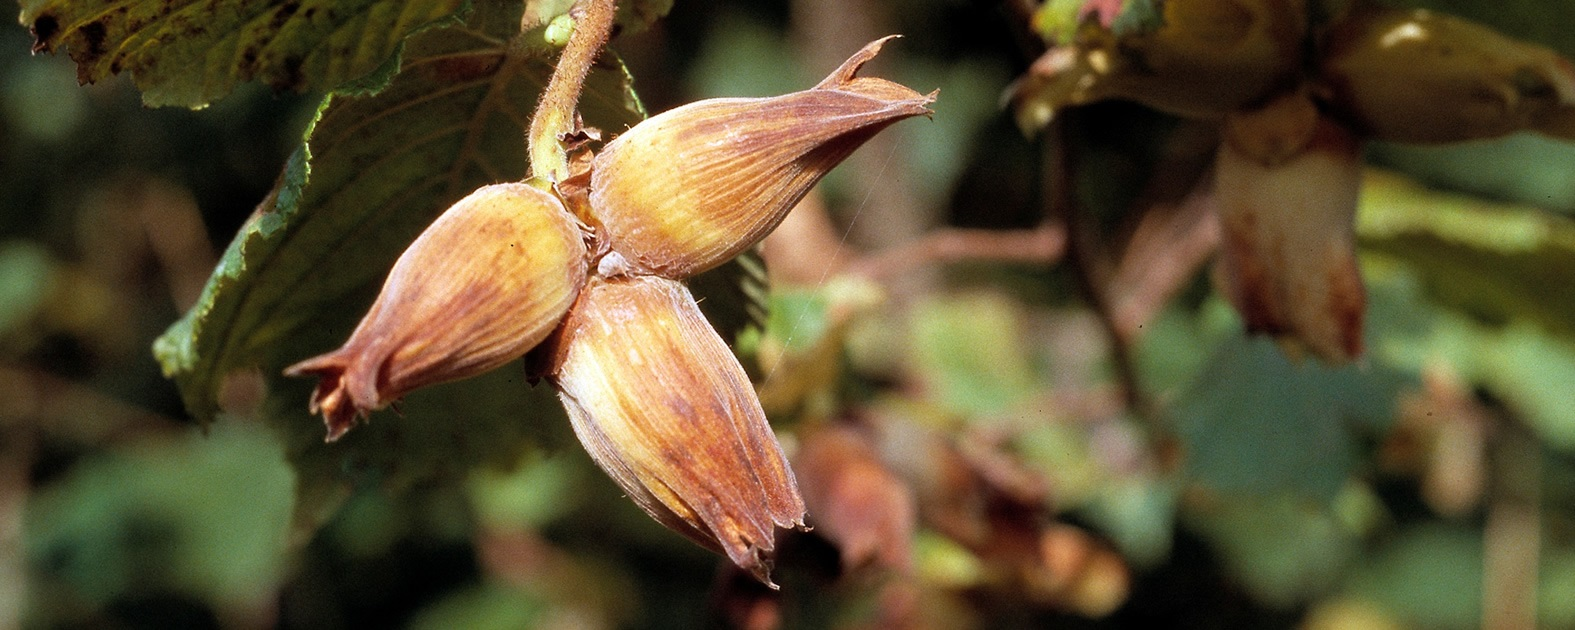 Kentish Cobnuts - Suppliers